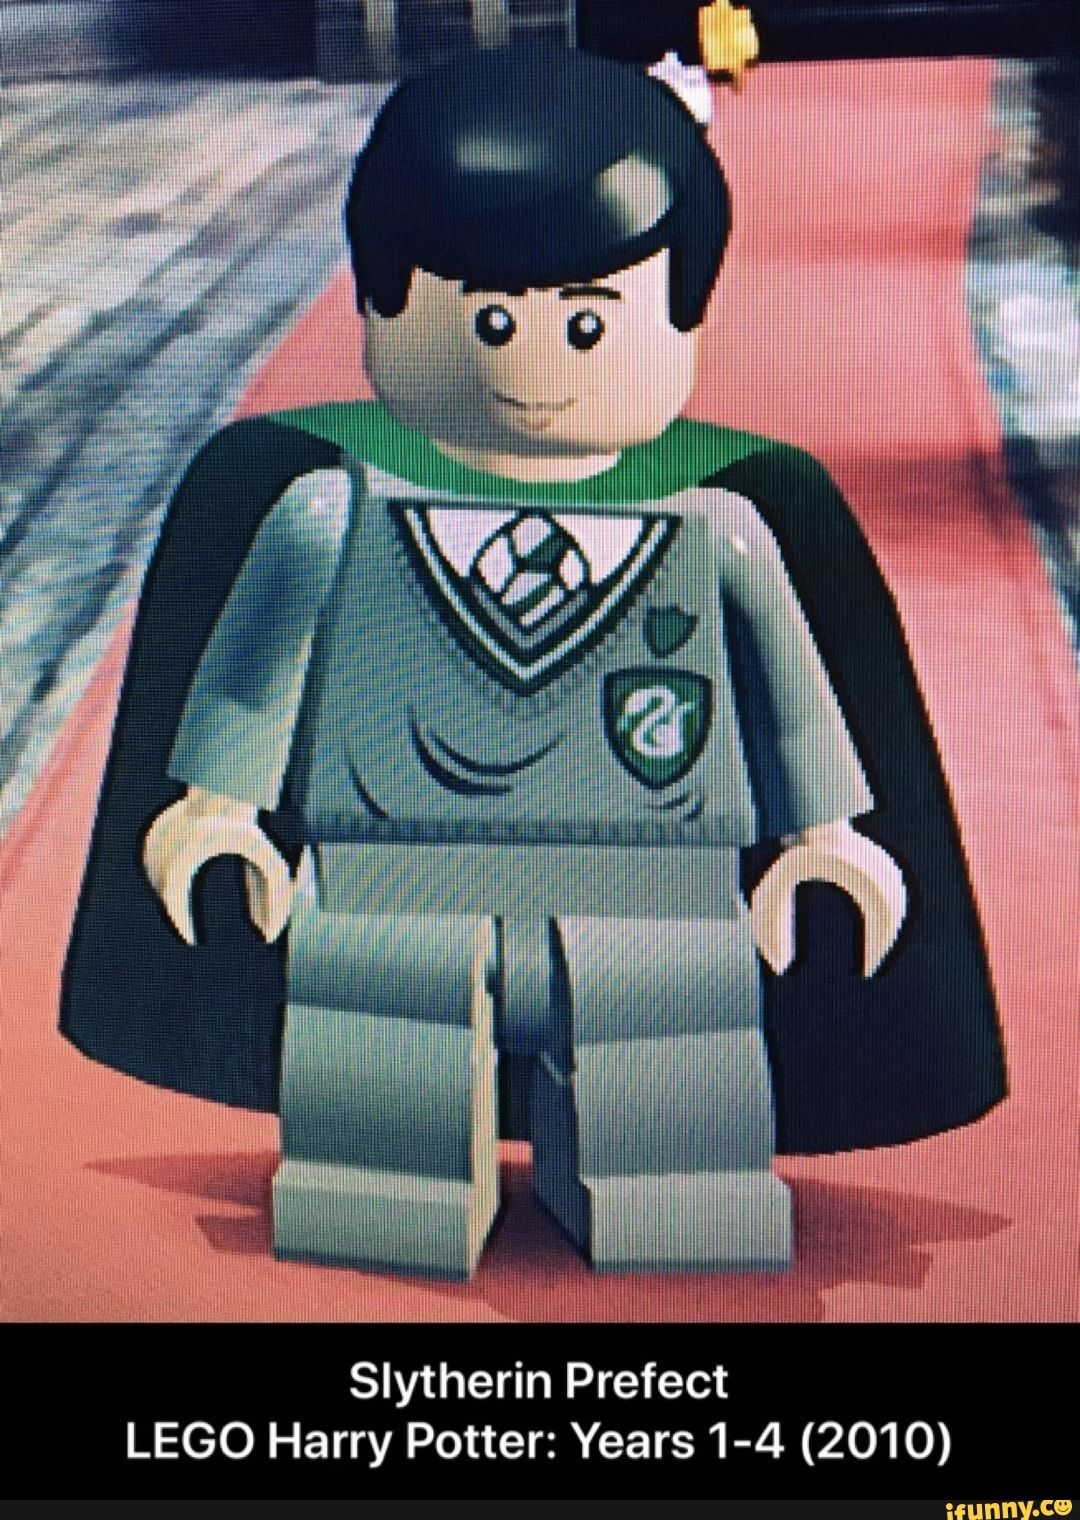 [+] Lego Harry Potter 1-4 Characters